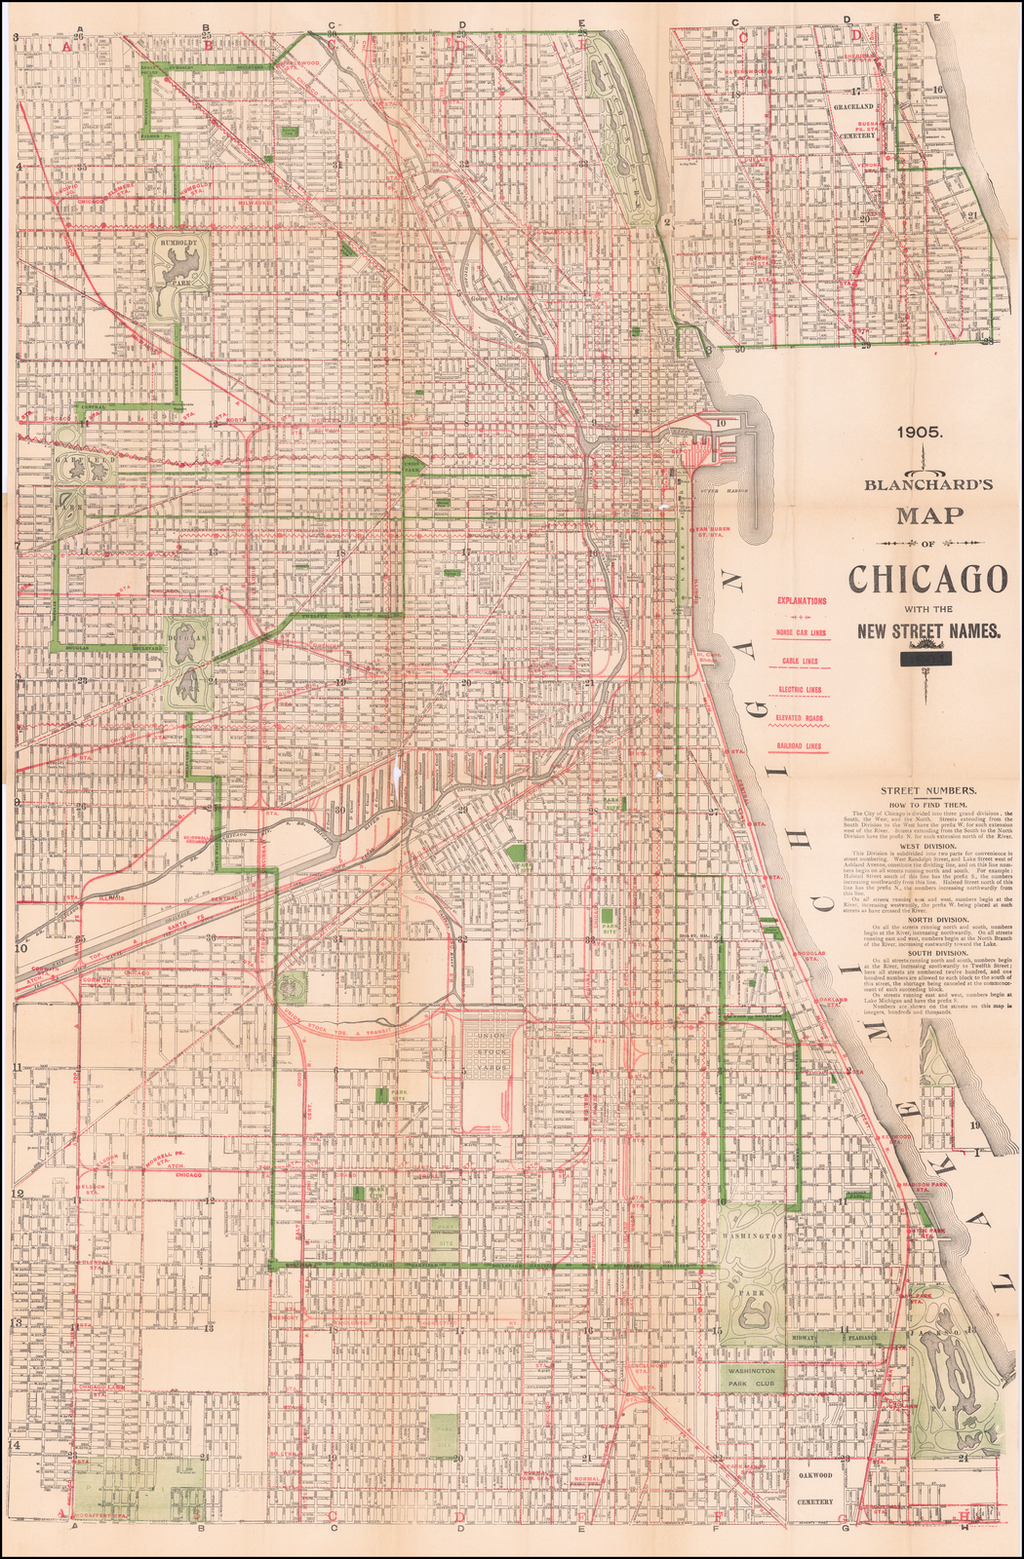 Blanchard's Map of Chicago with the New Street Names. 1905 By Rufus Blanchard